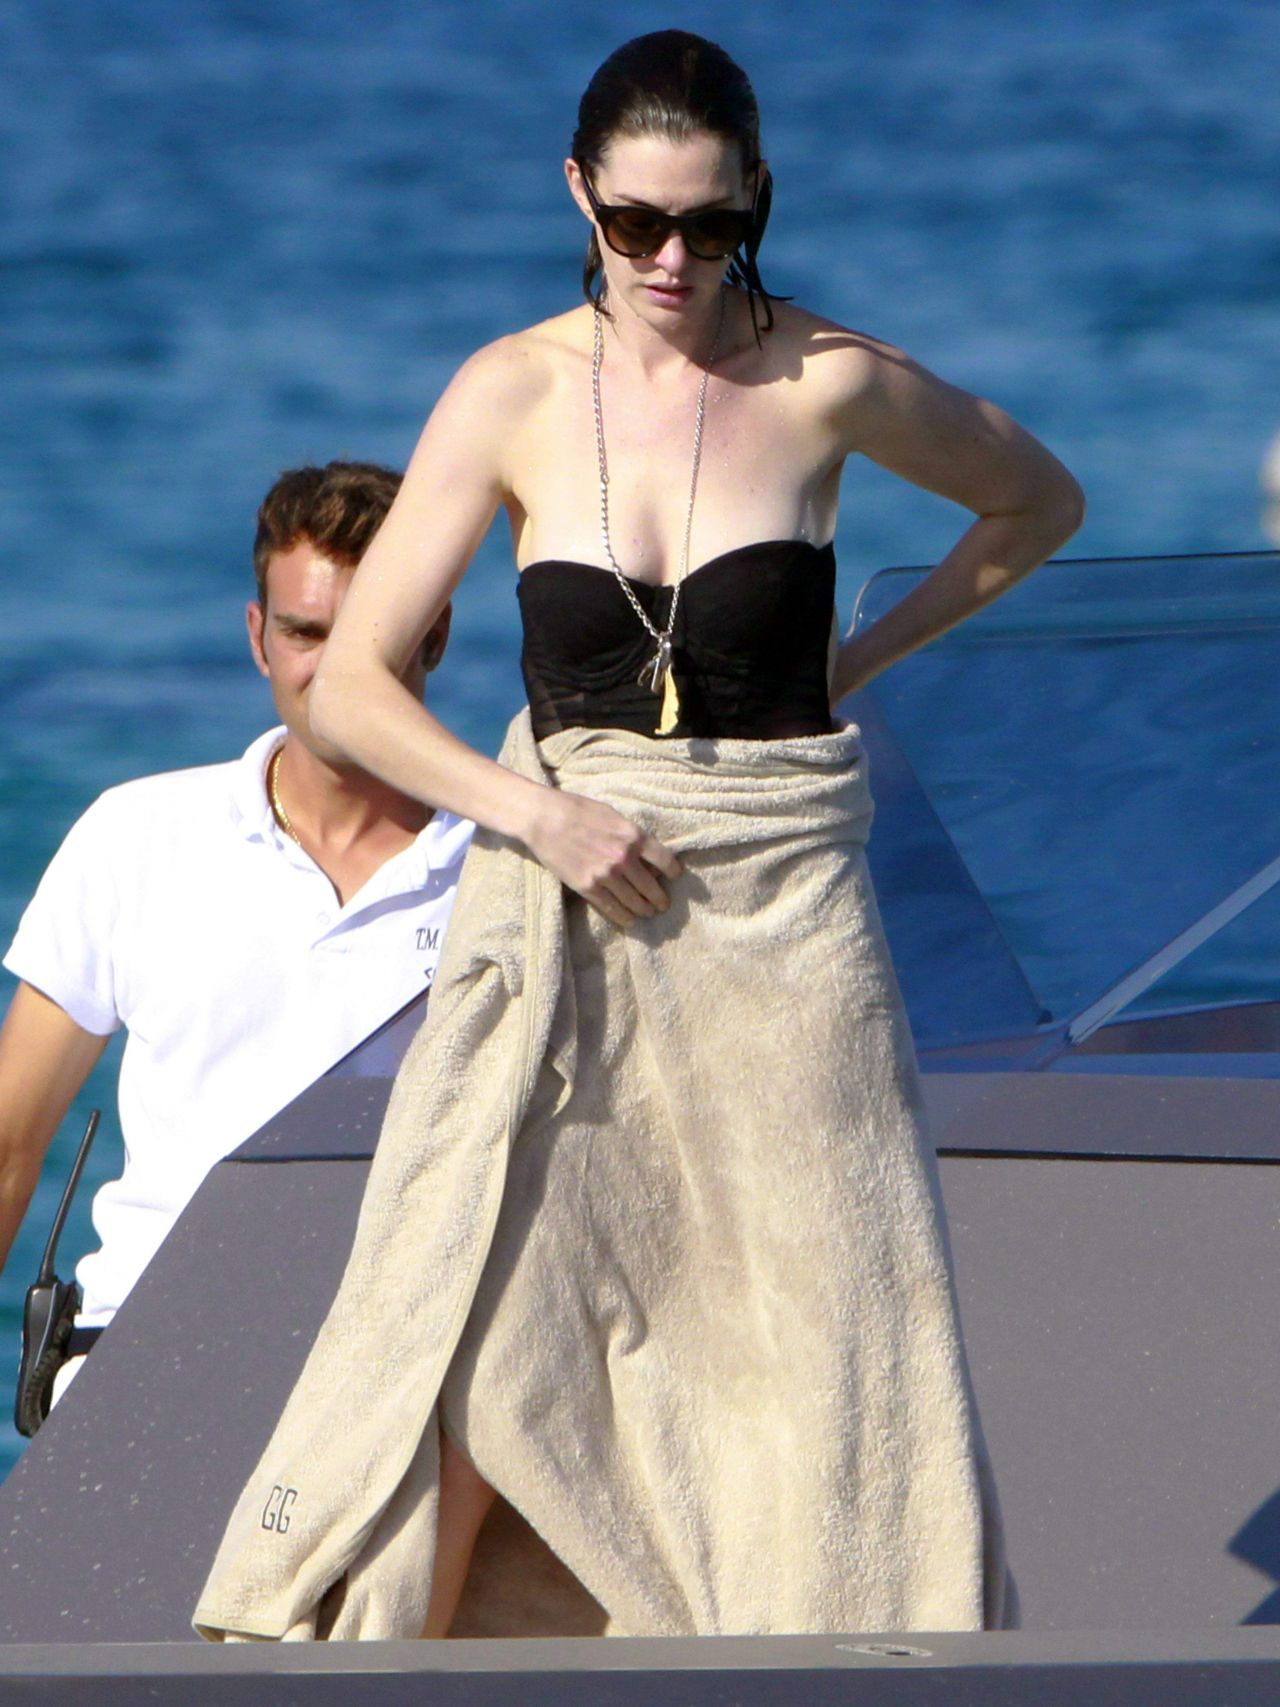 Anne Hathaway Wearing A Bikini In Ibiza August 2015